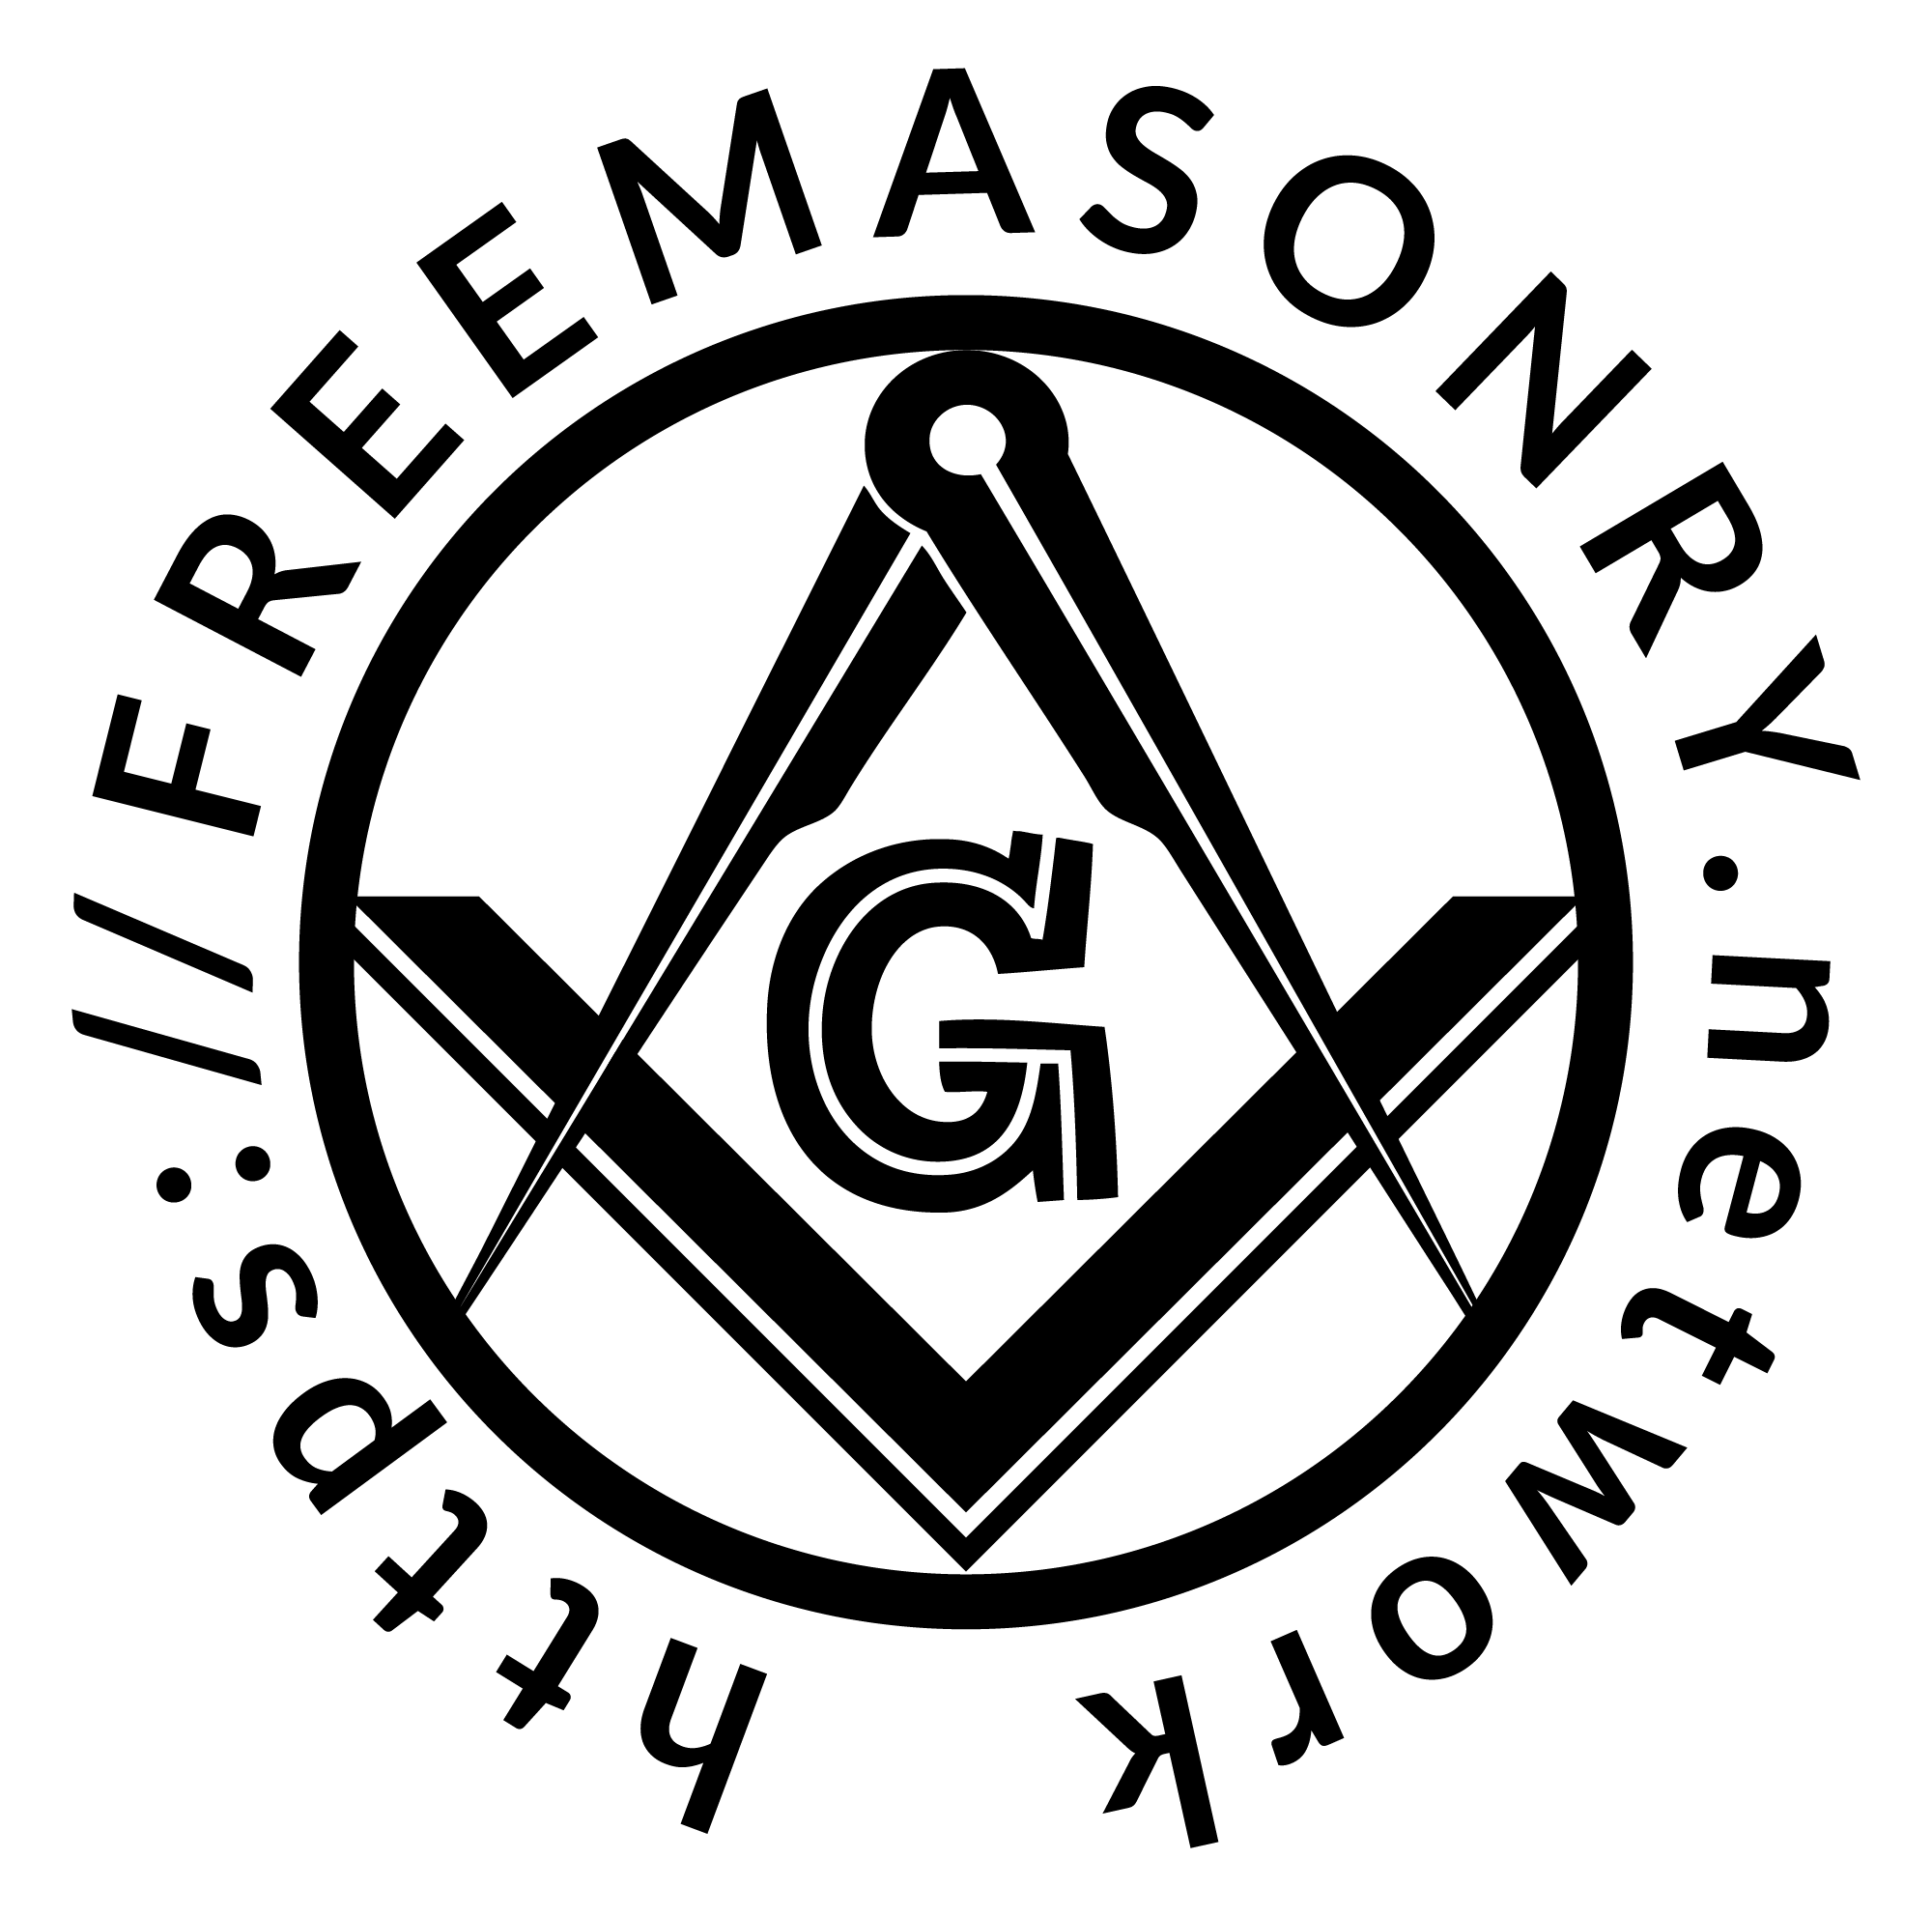 HISTORY OF ROYAL ARCH MASONRY IN NORTH AMERICA